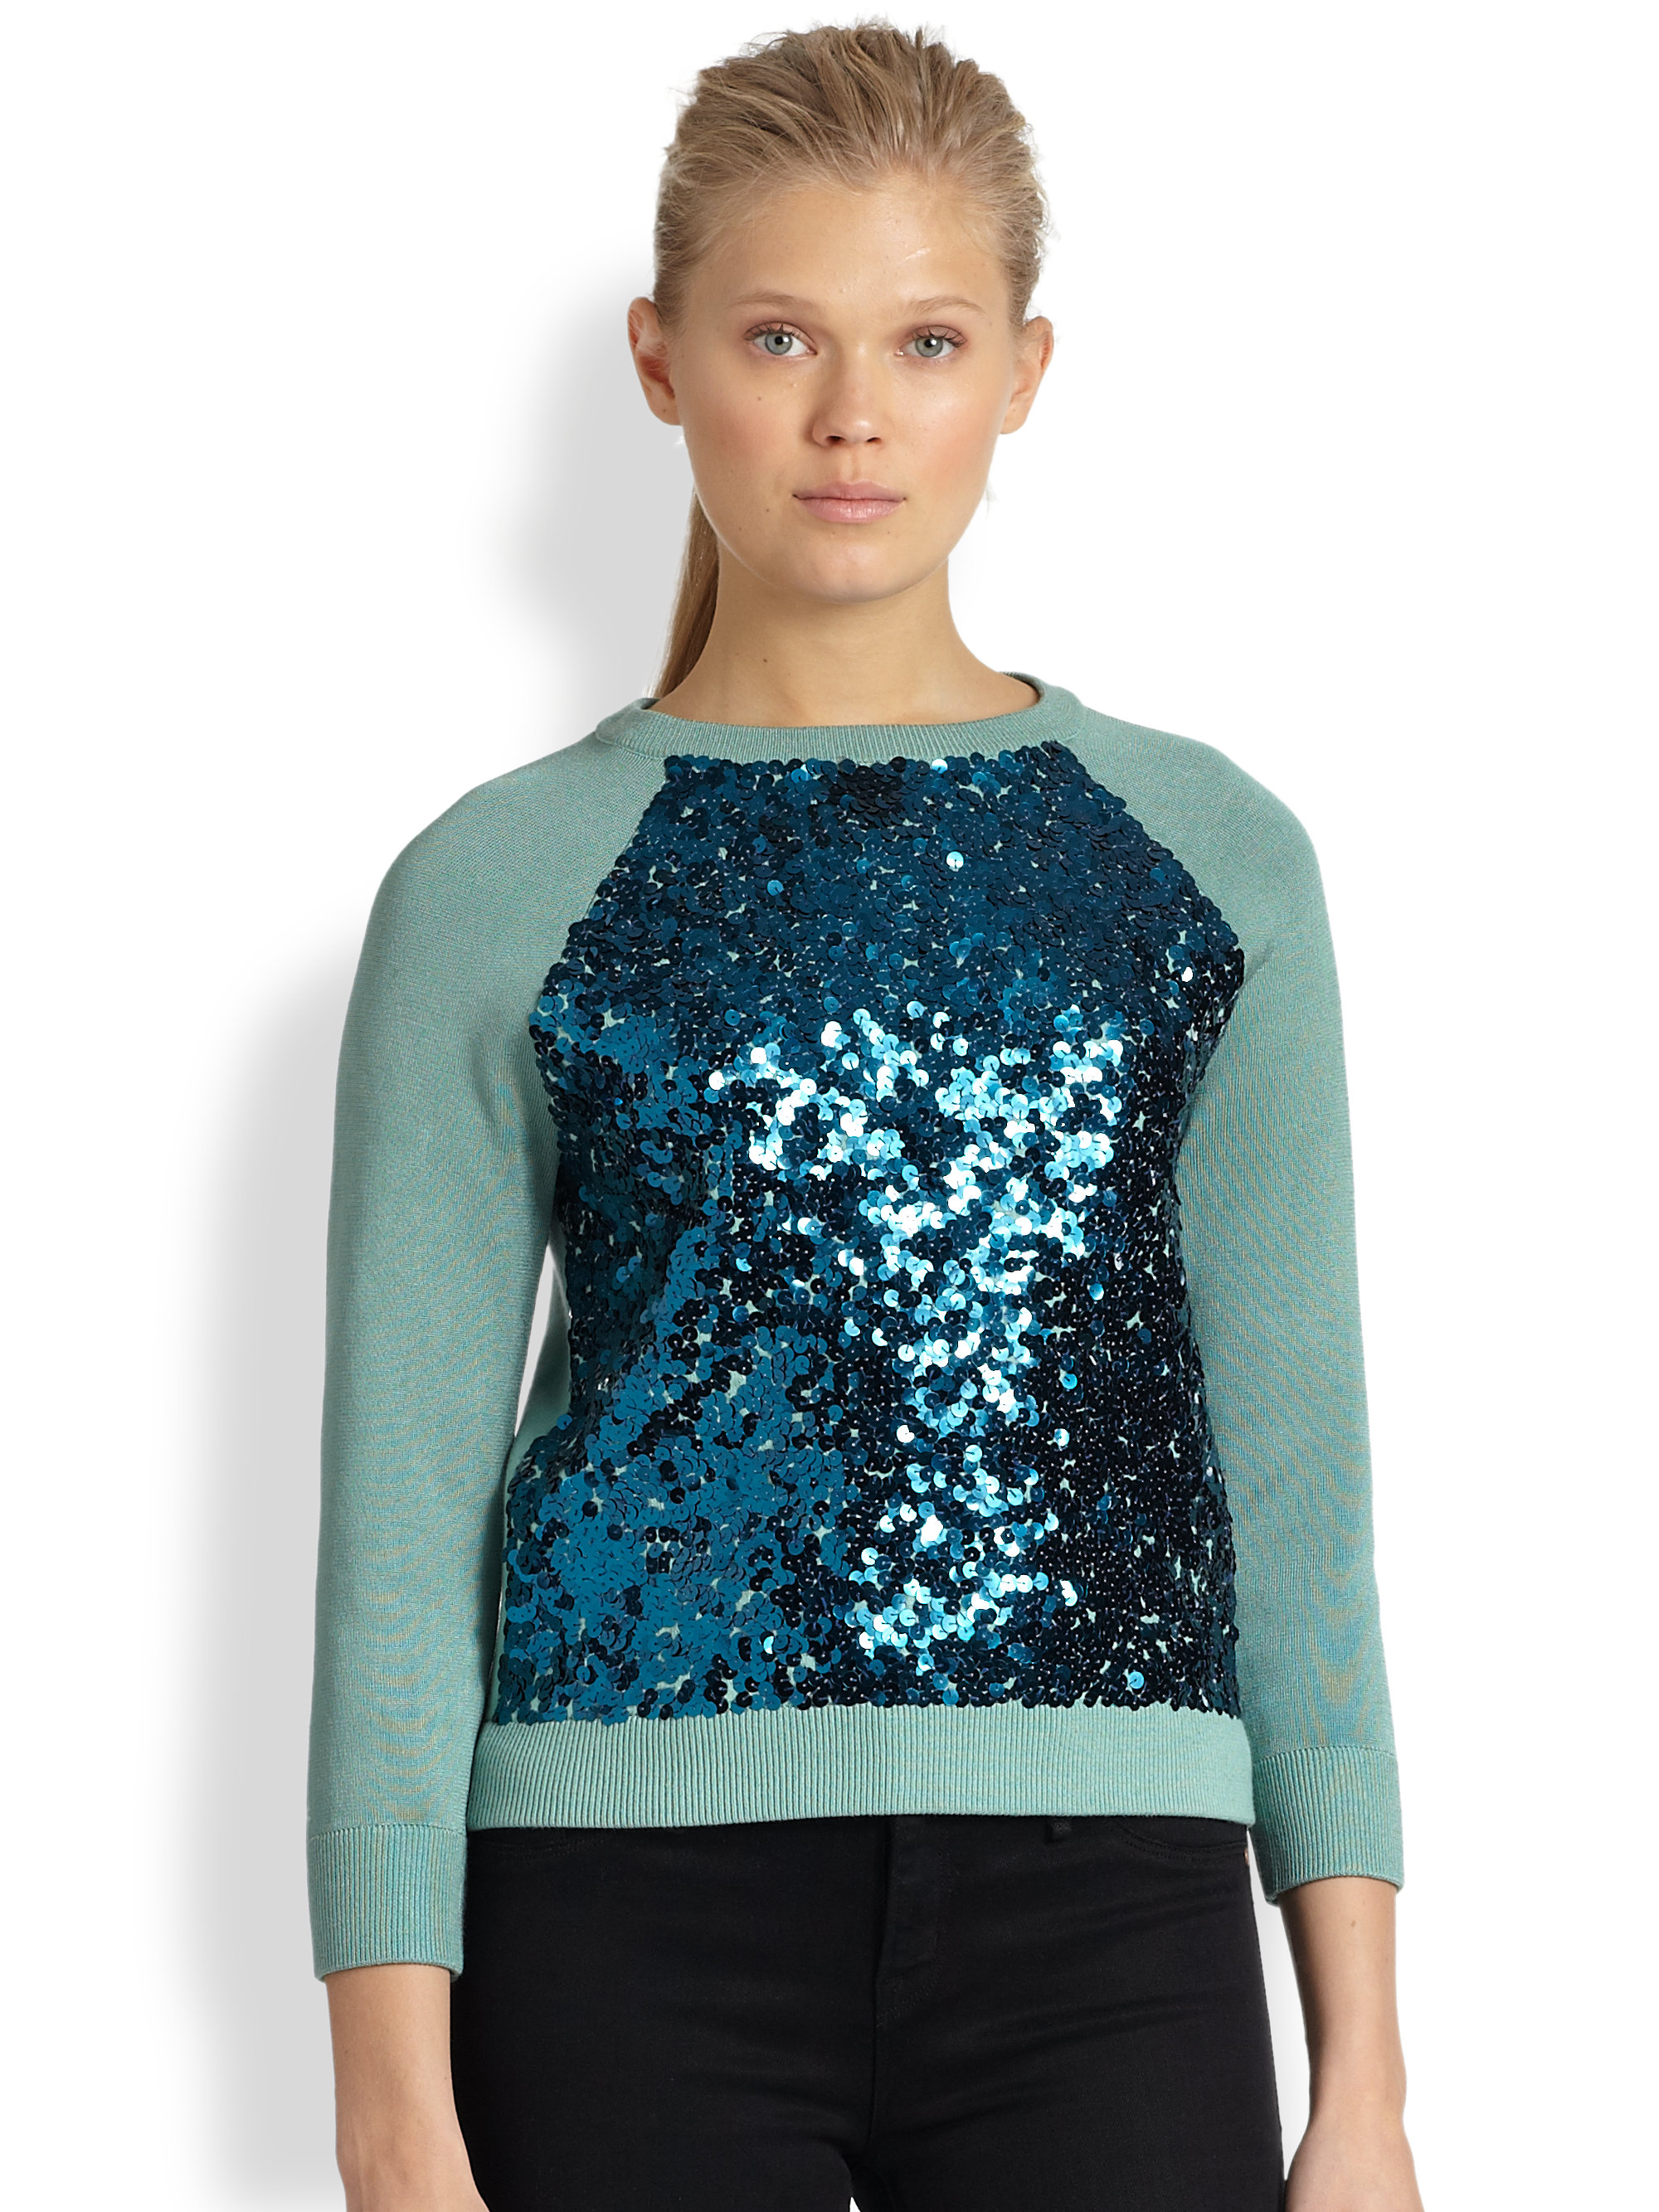 Marc by marc jacobs Gretta Sequin Sweater in Green | Lyst